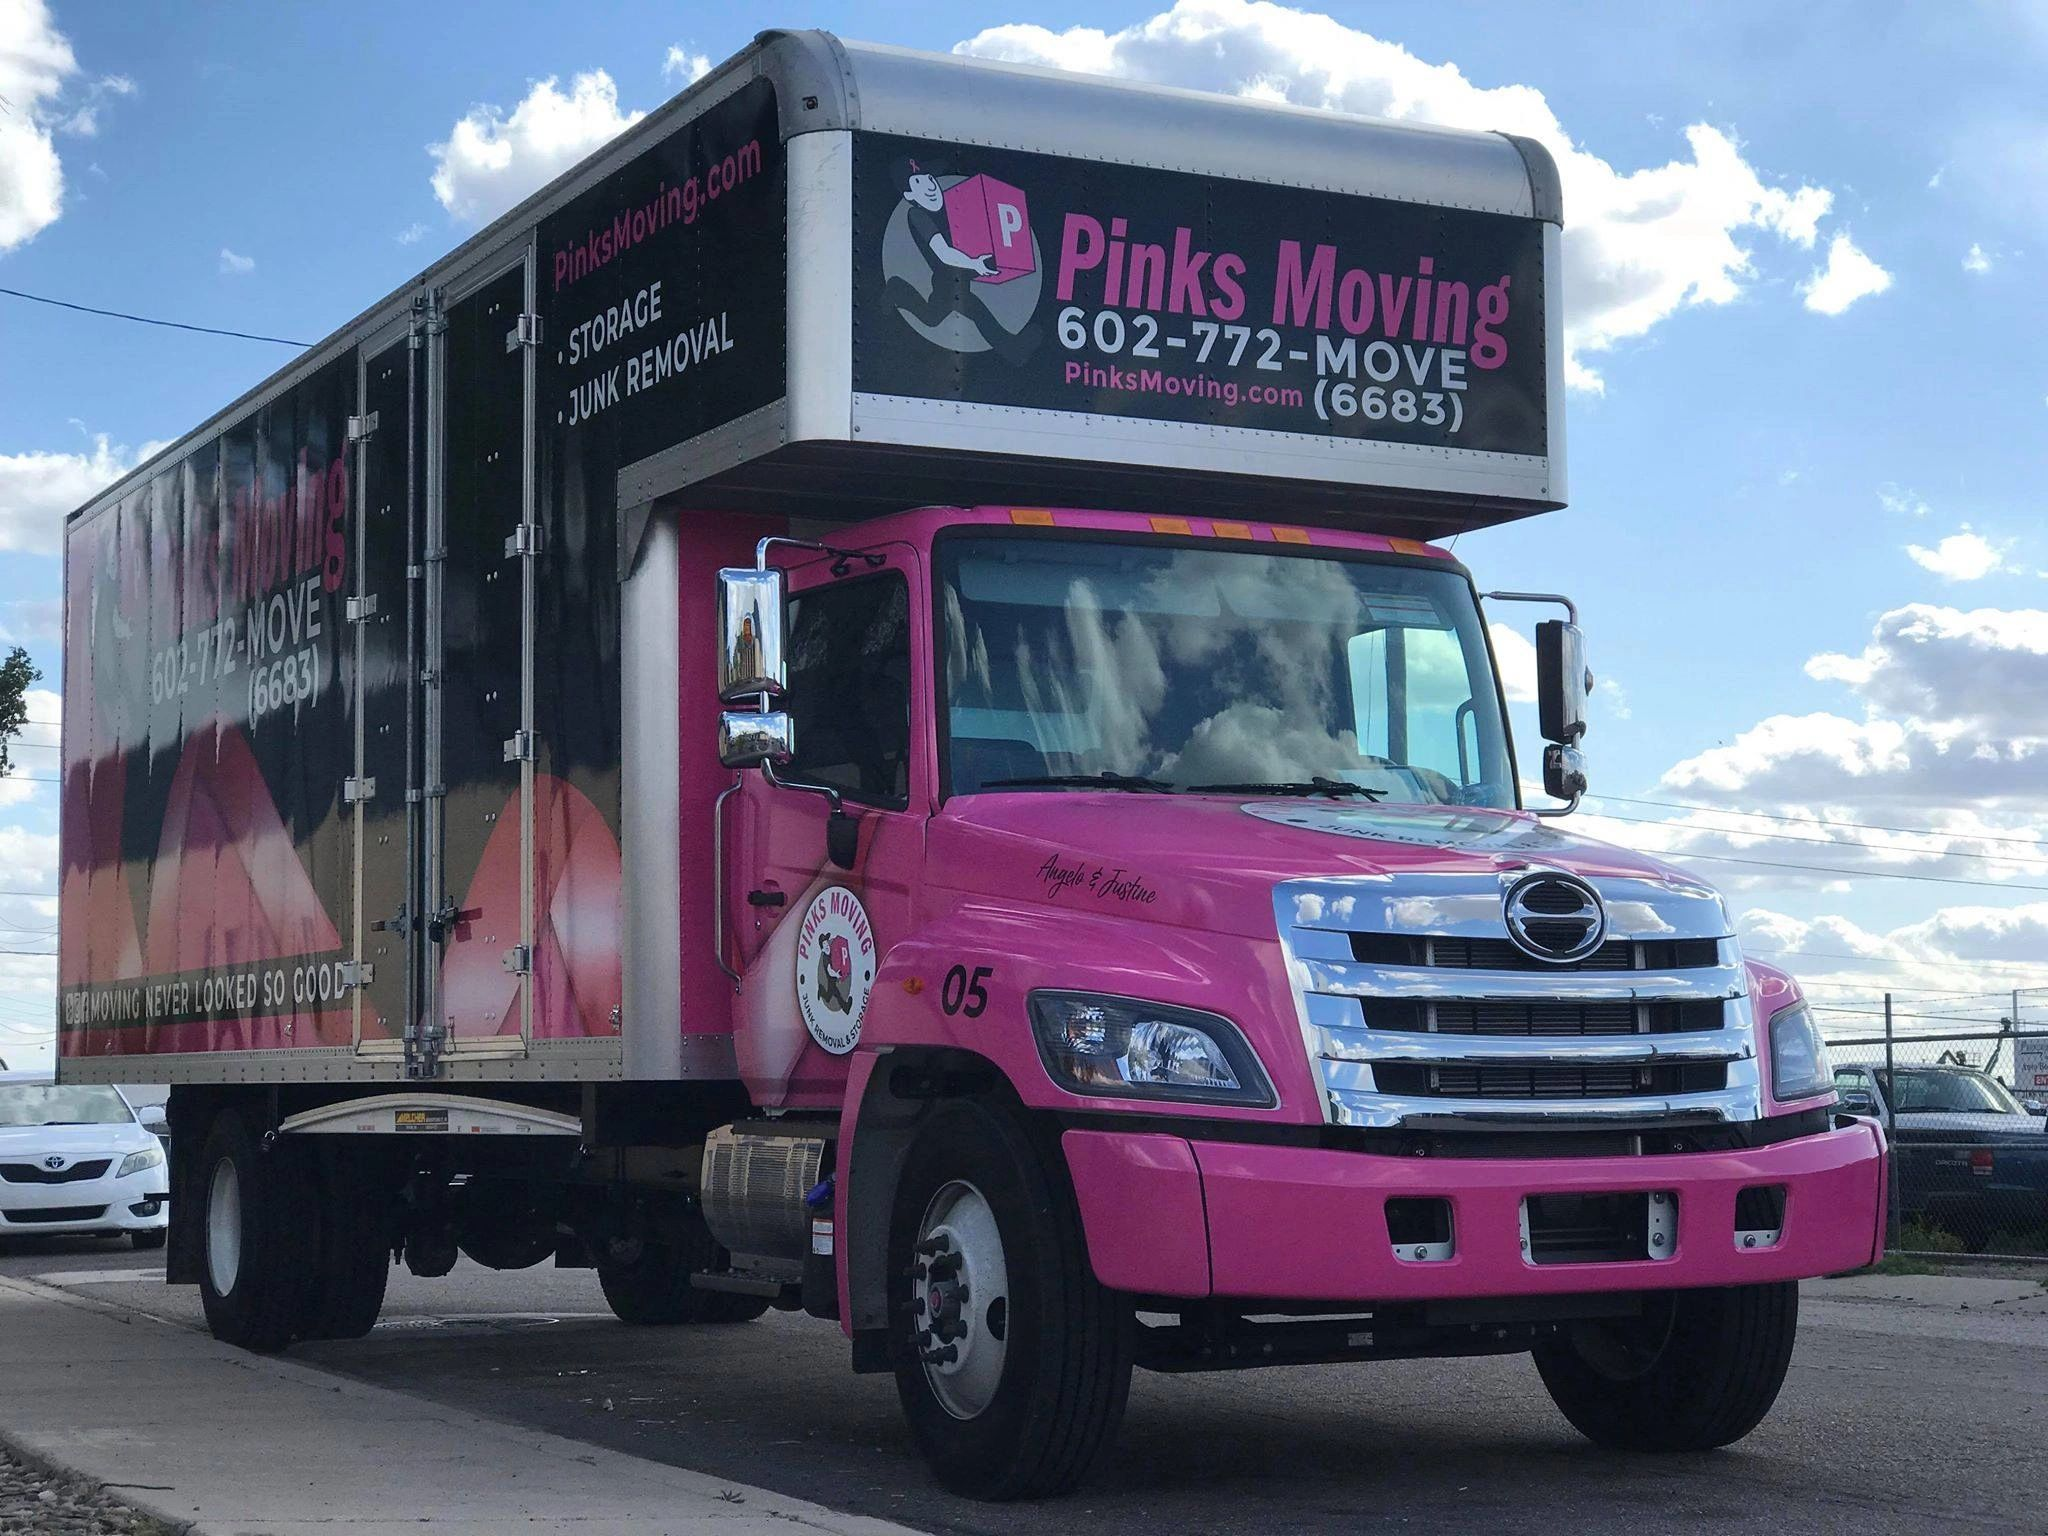 PINKS MOVING IS THE BEST MOVING COMPANY IN SCOTTSDALE